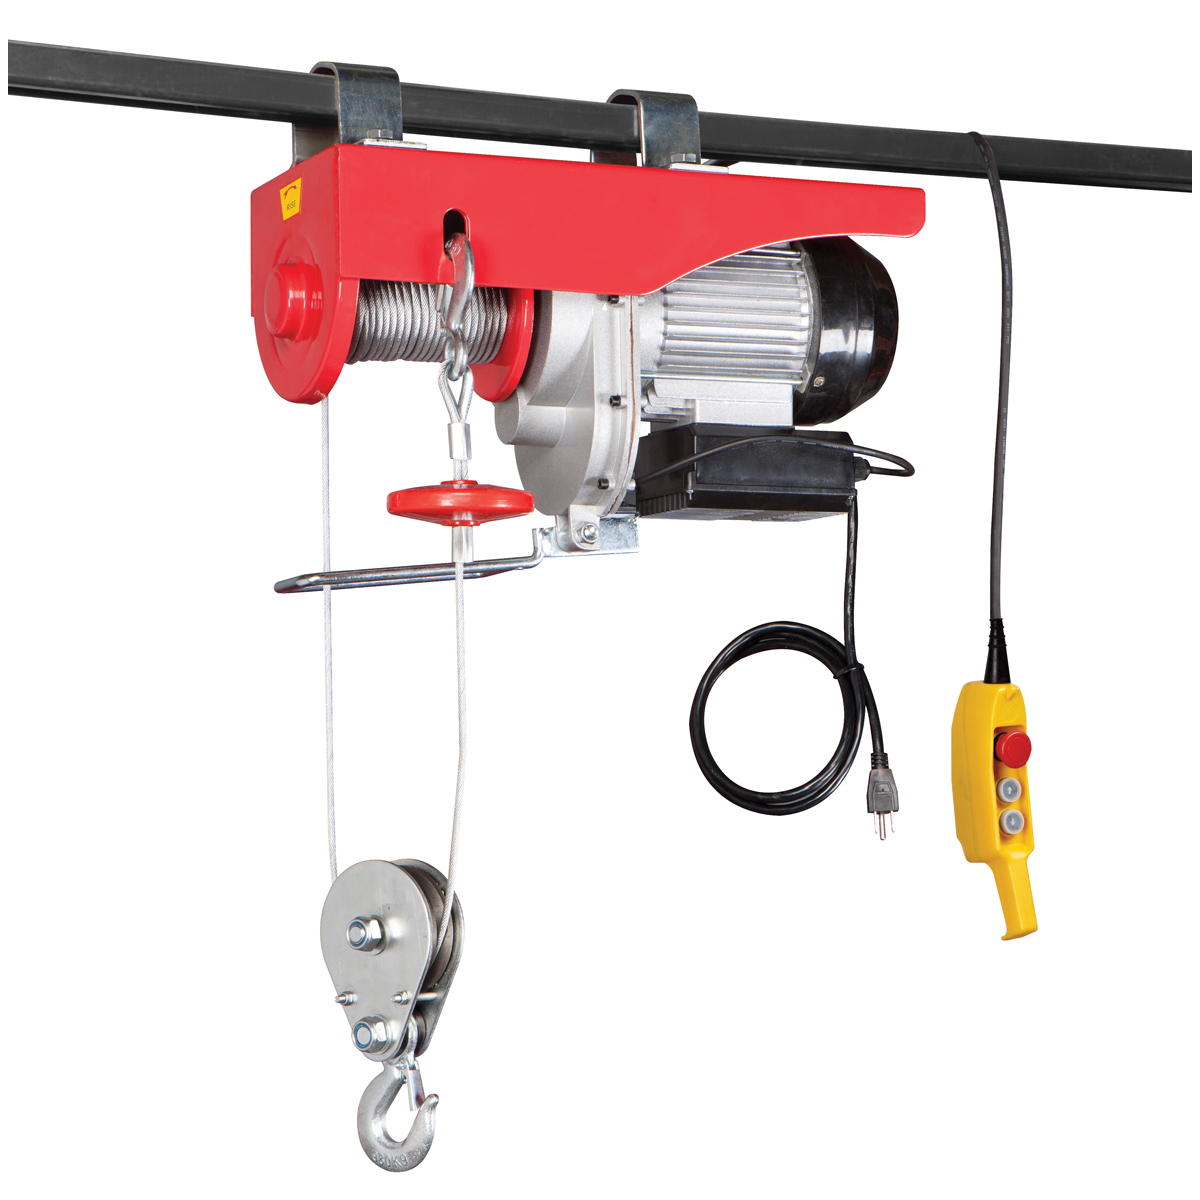 62770_zzz_500 2000 lb electric hoist with remote control